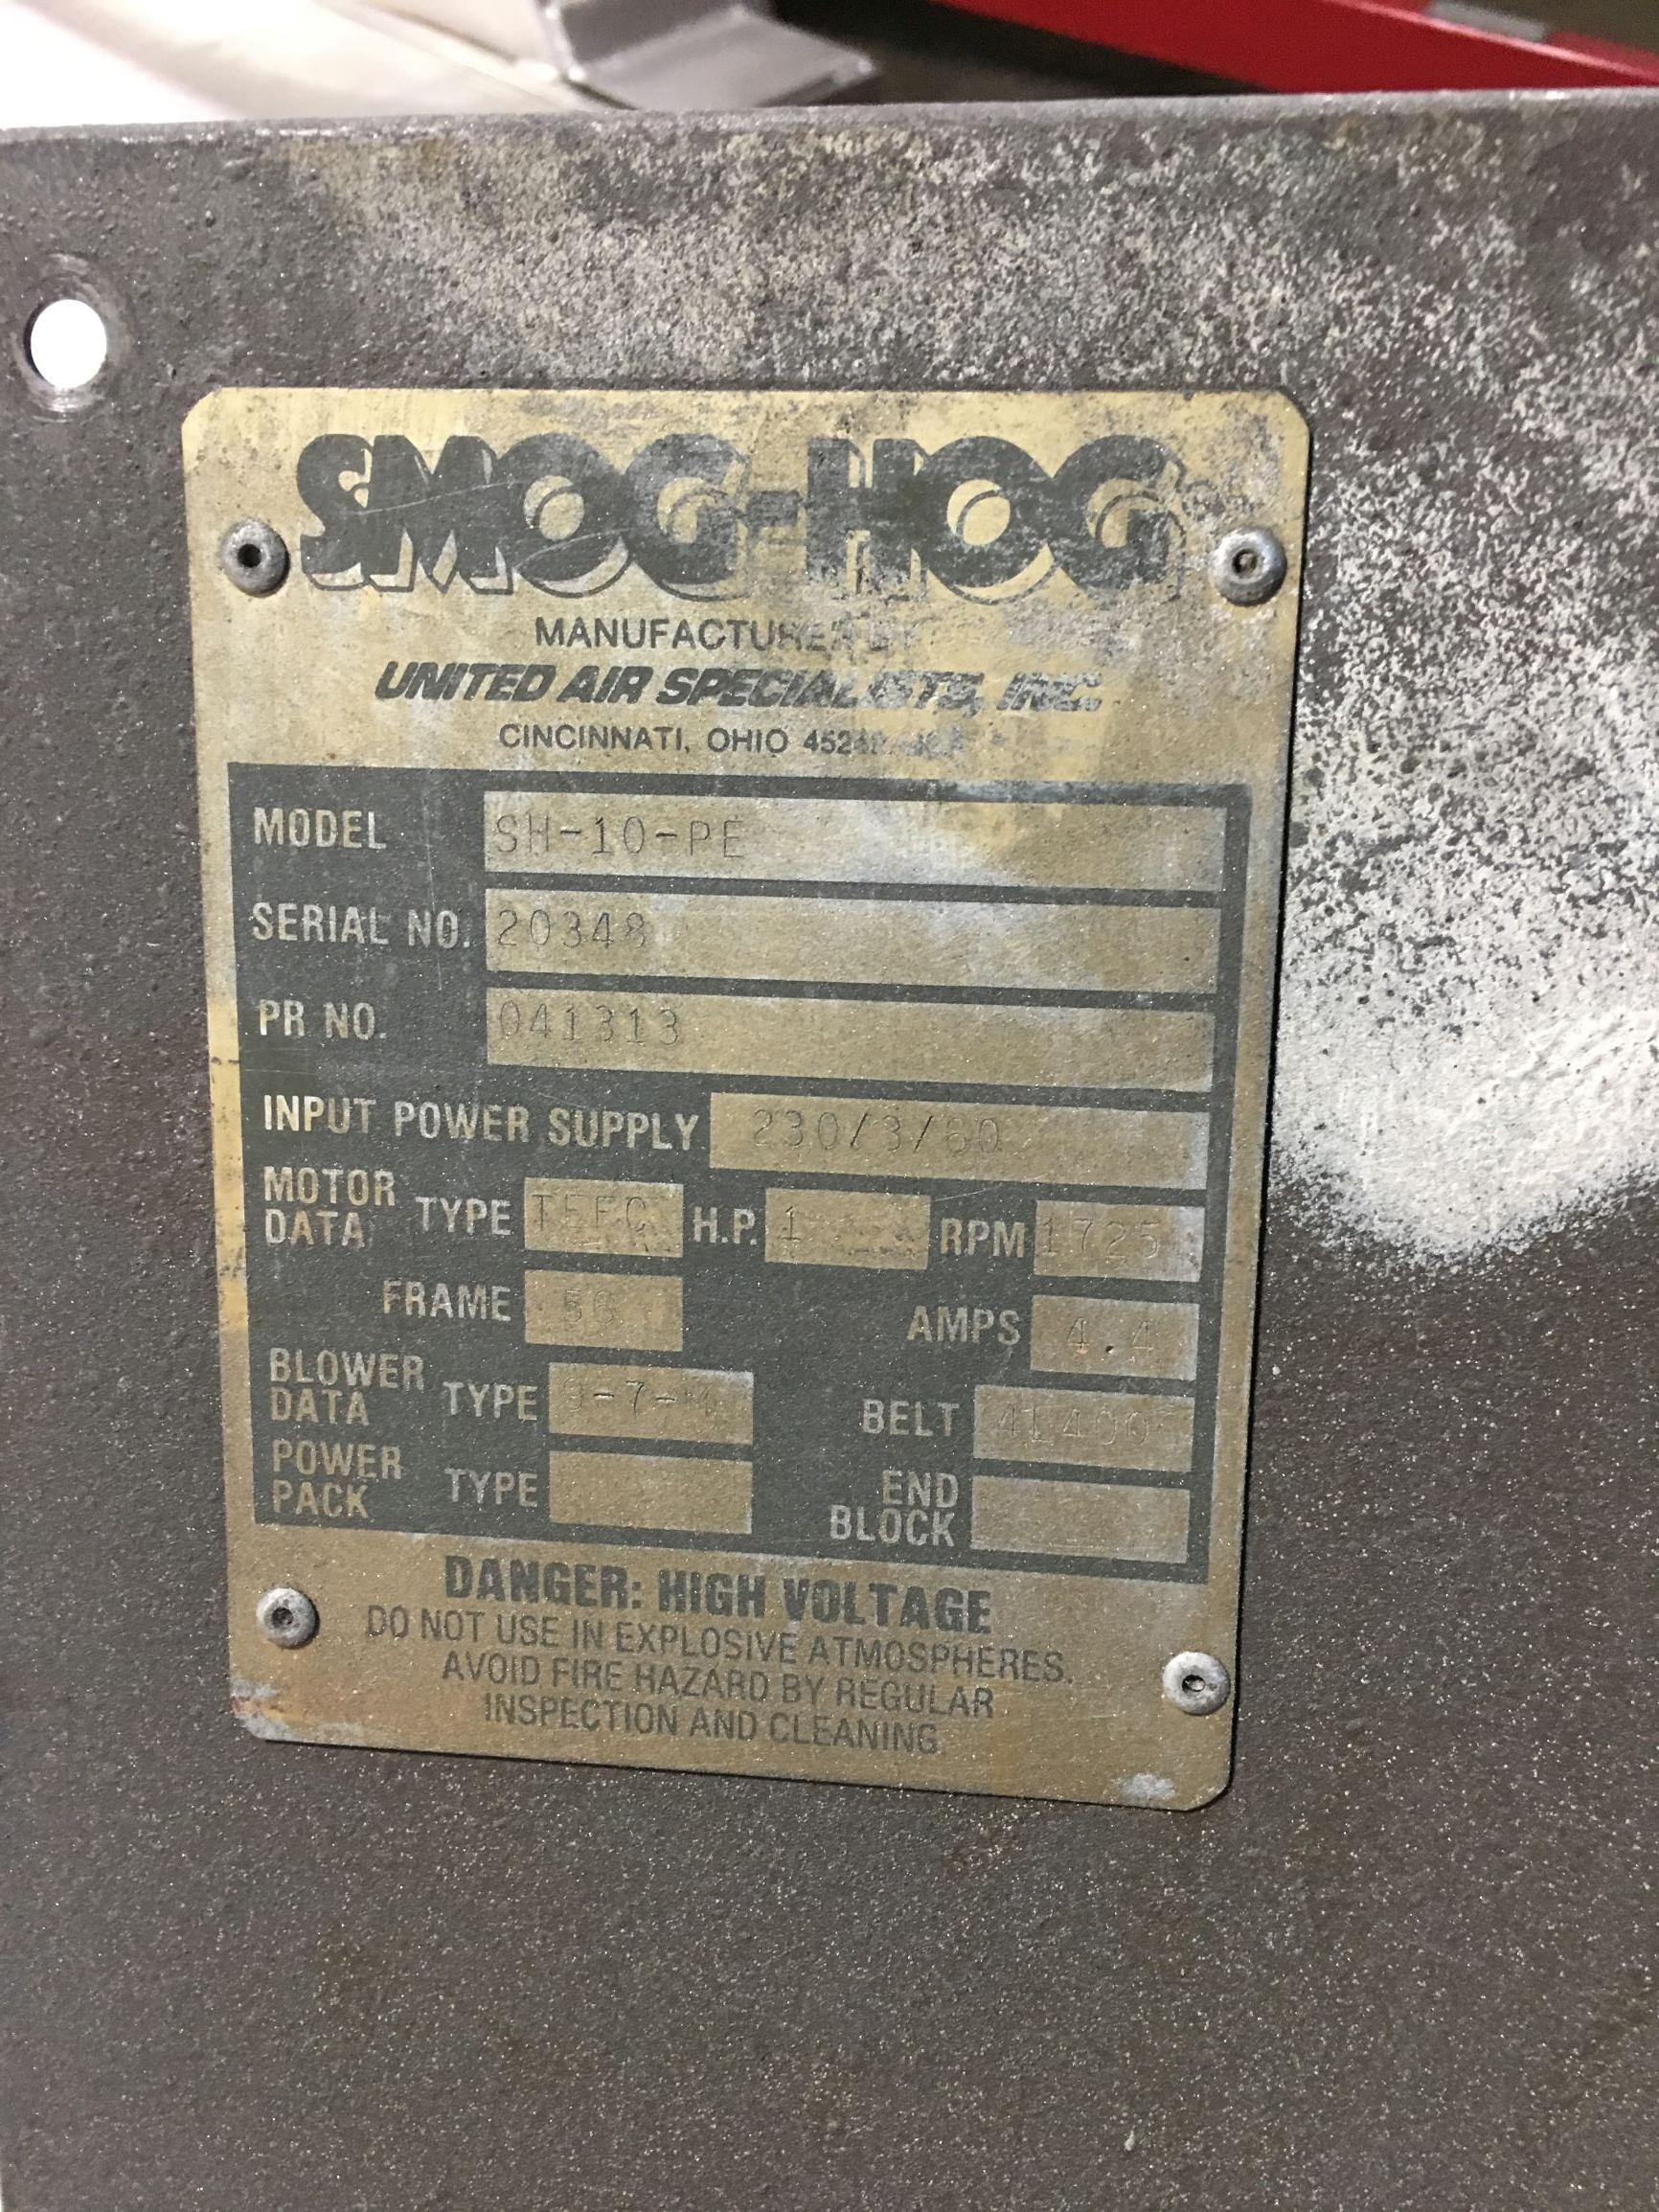 Smog Hog Model SH-10-PE Industrial Air Cleaner